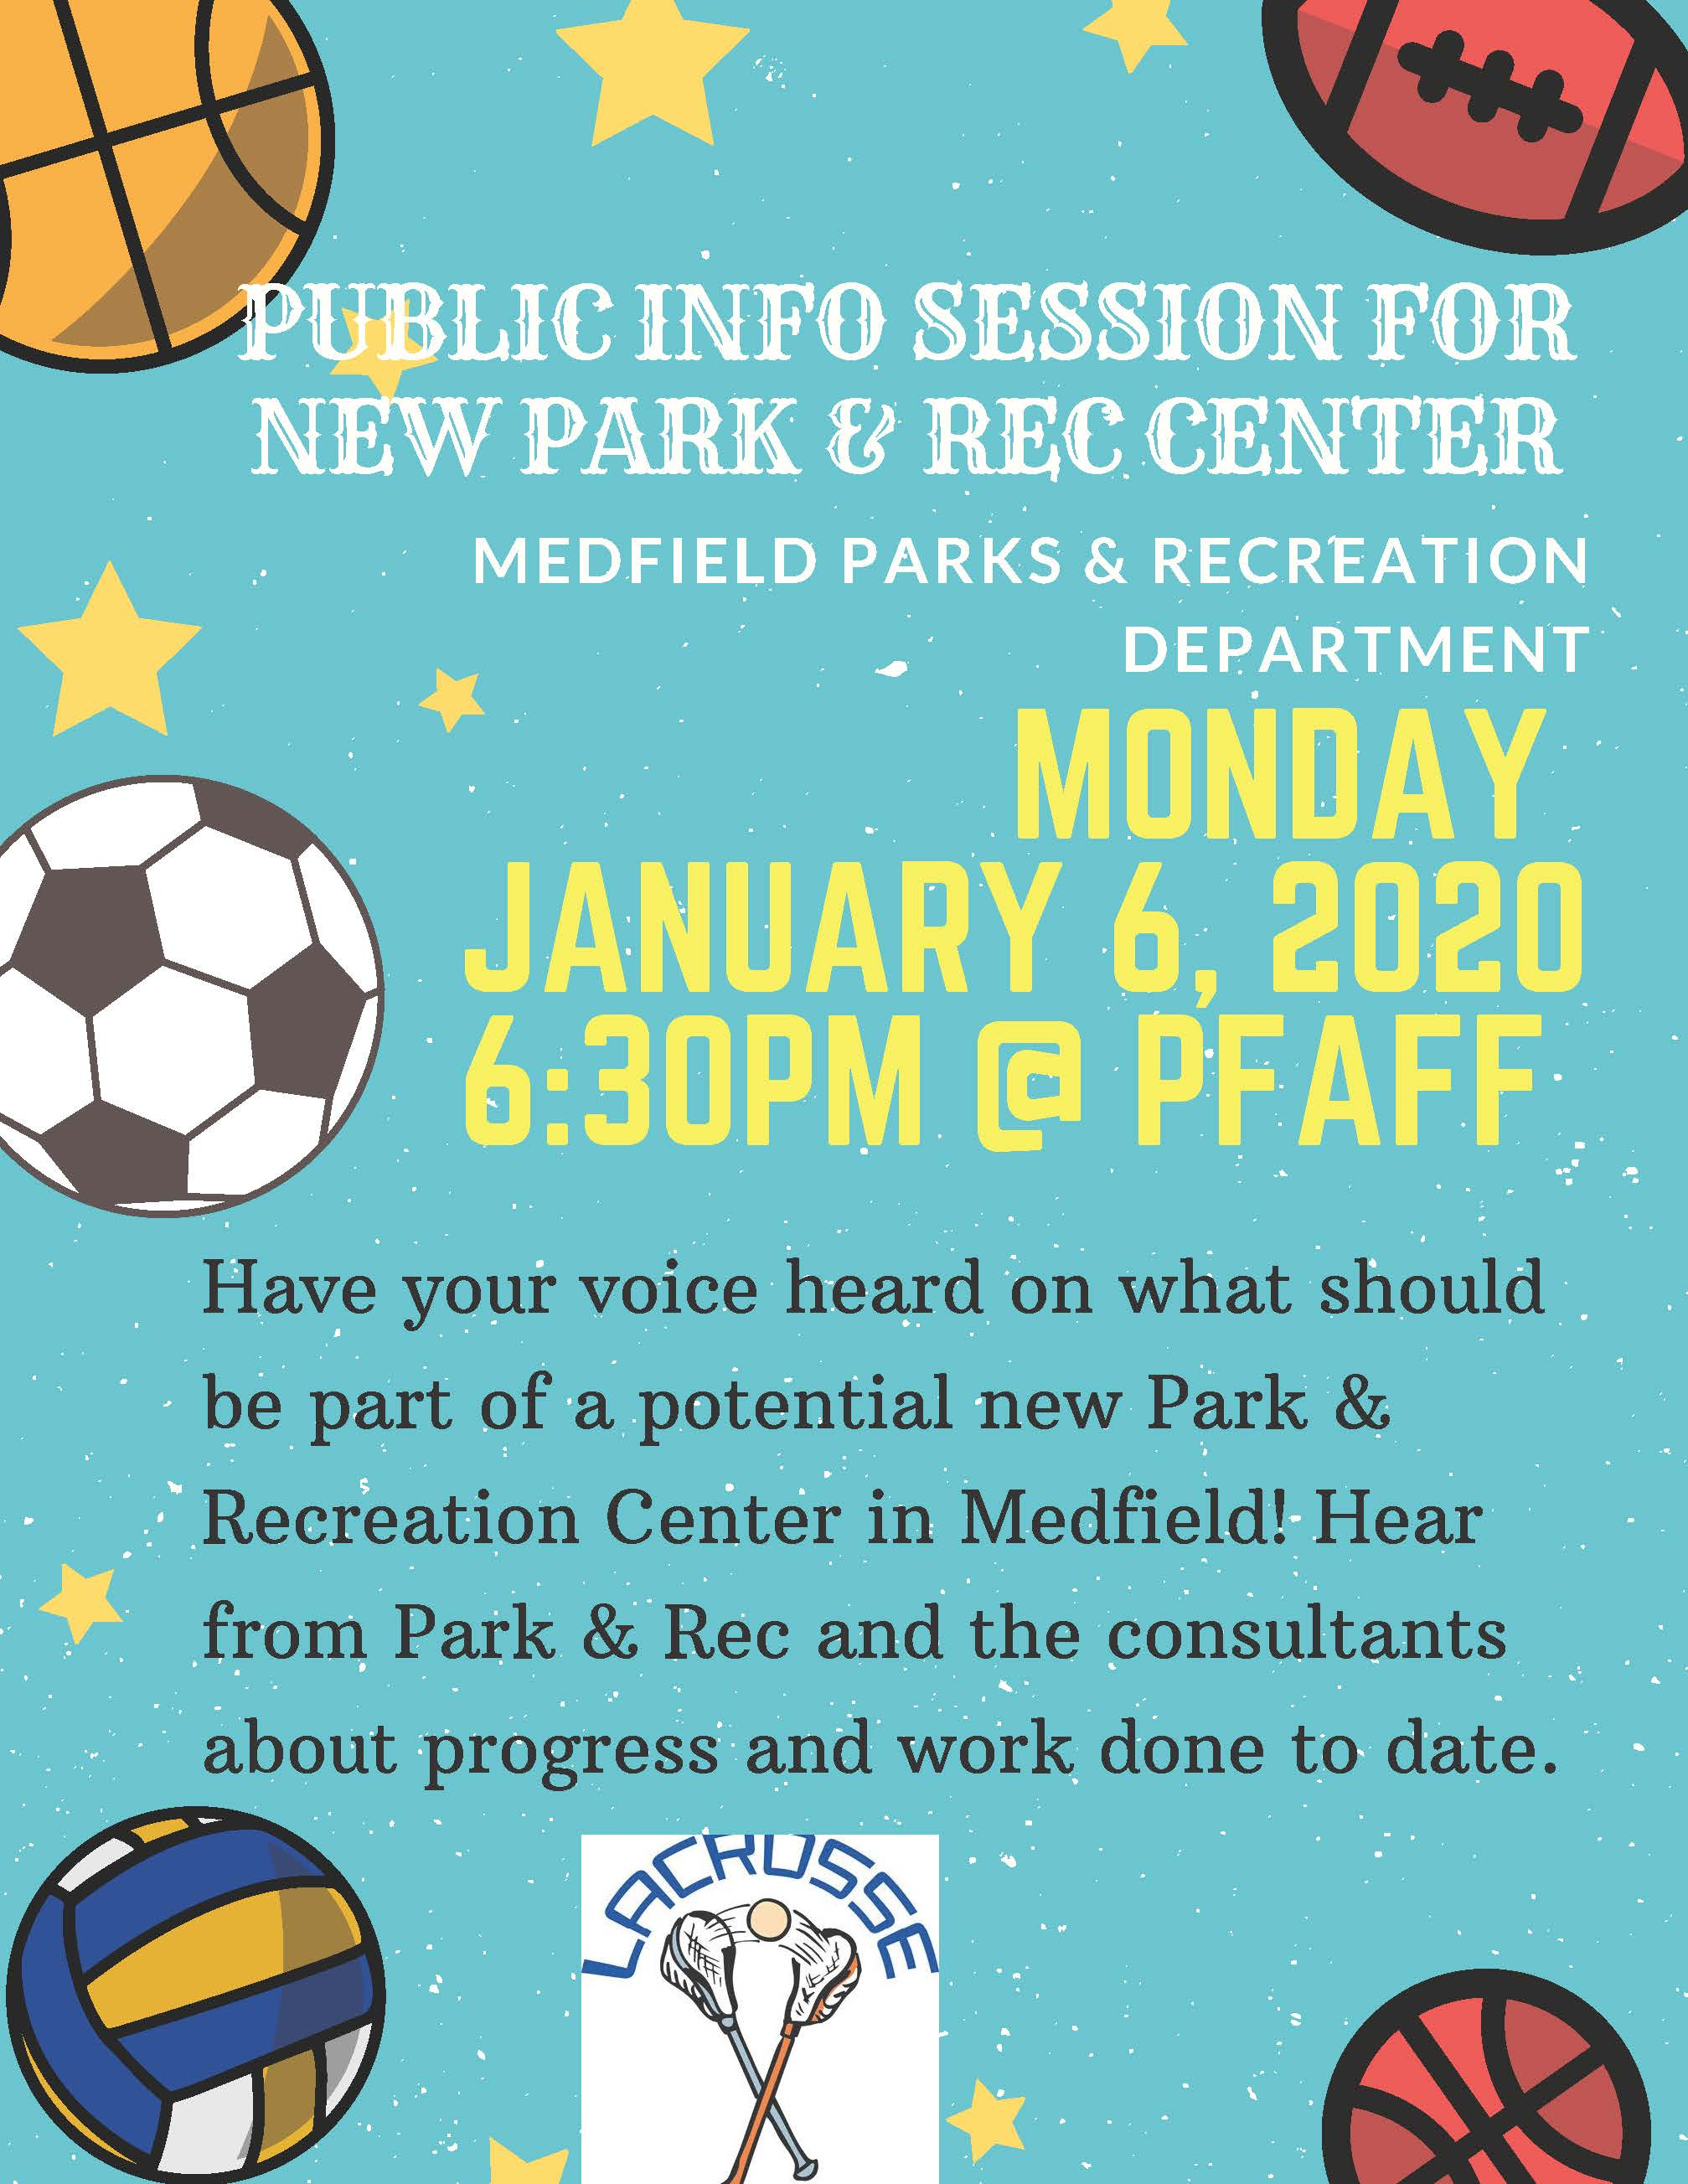 MONDAY JANUARY 6, 2020 6:30PM @ PFAFF MEDFIELD PARKS & RECREATION DEPARTMENT PUBLIC INFO SESSION FOR NEW PARK & REC CENTER Have your voice heard on what should be part of a potential new Park & Recreation Center in Medfield! Hear from Park & Rec and the consultants about progress and work done to date.